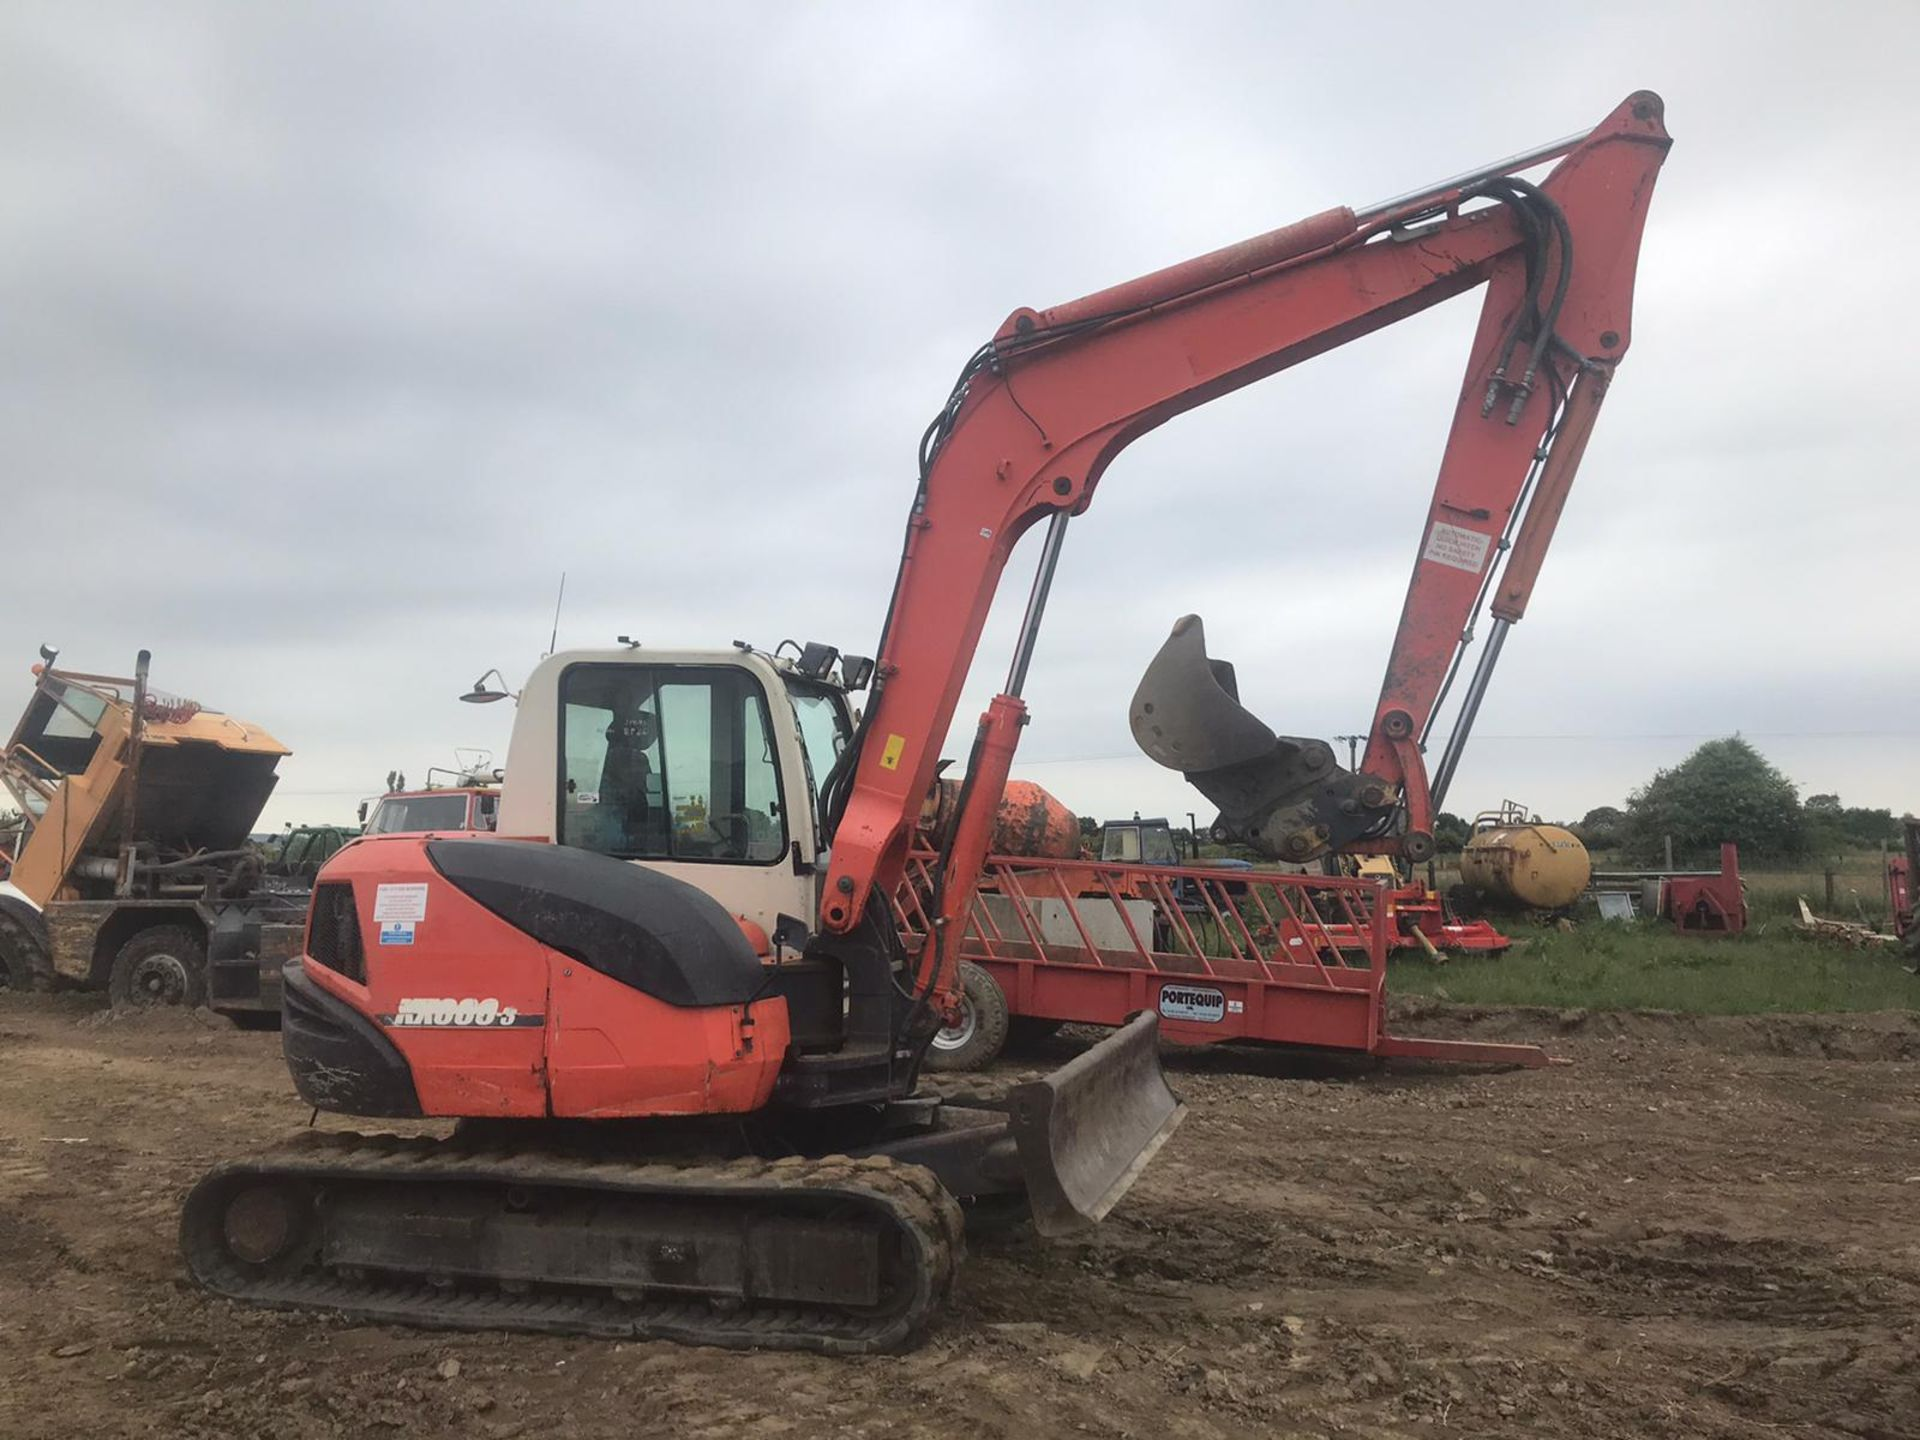 Lot 31 - KUBOTA K080-3 TRACKED CRAWLER EXCAVATOR, C/W 2 X BUCKETS, RUNS, DRIVES AND DIGS *PLUS VAT*